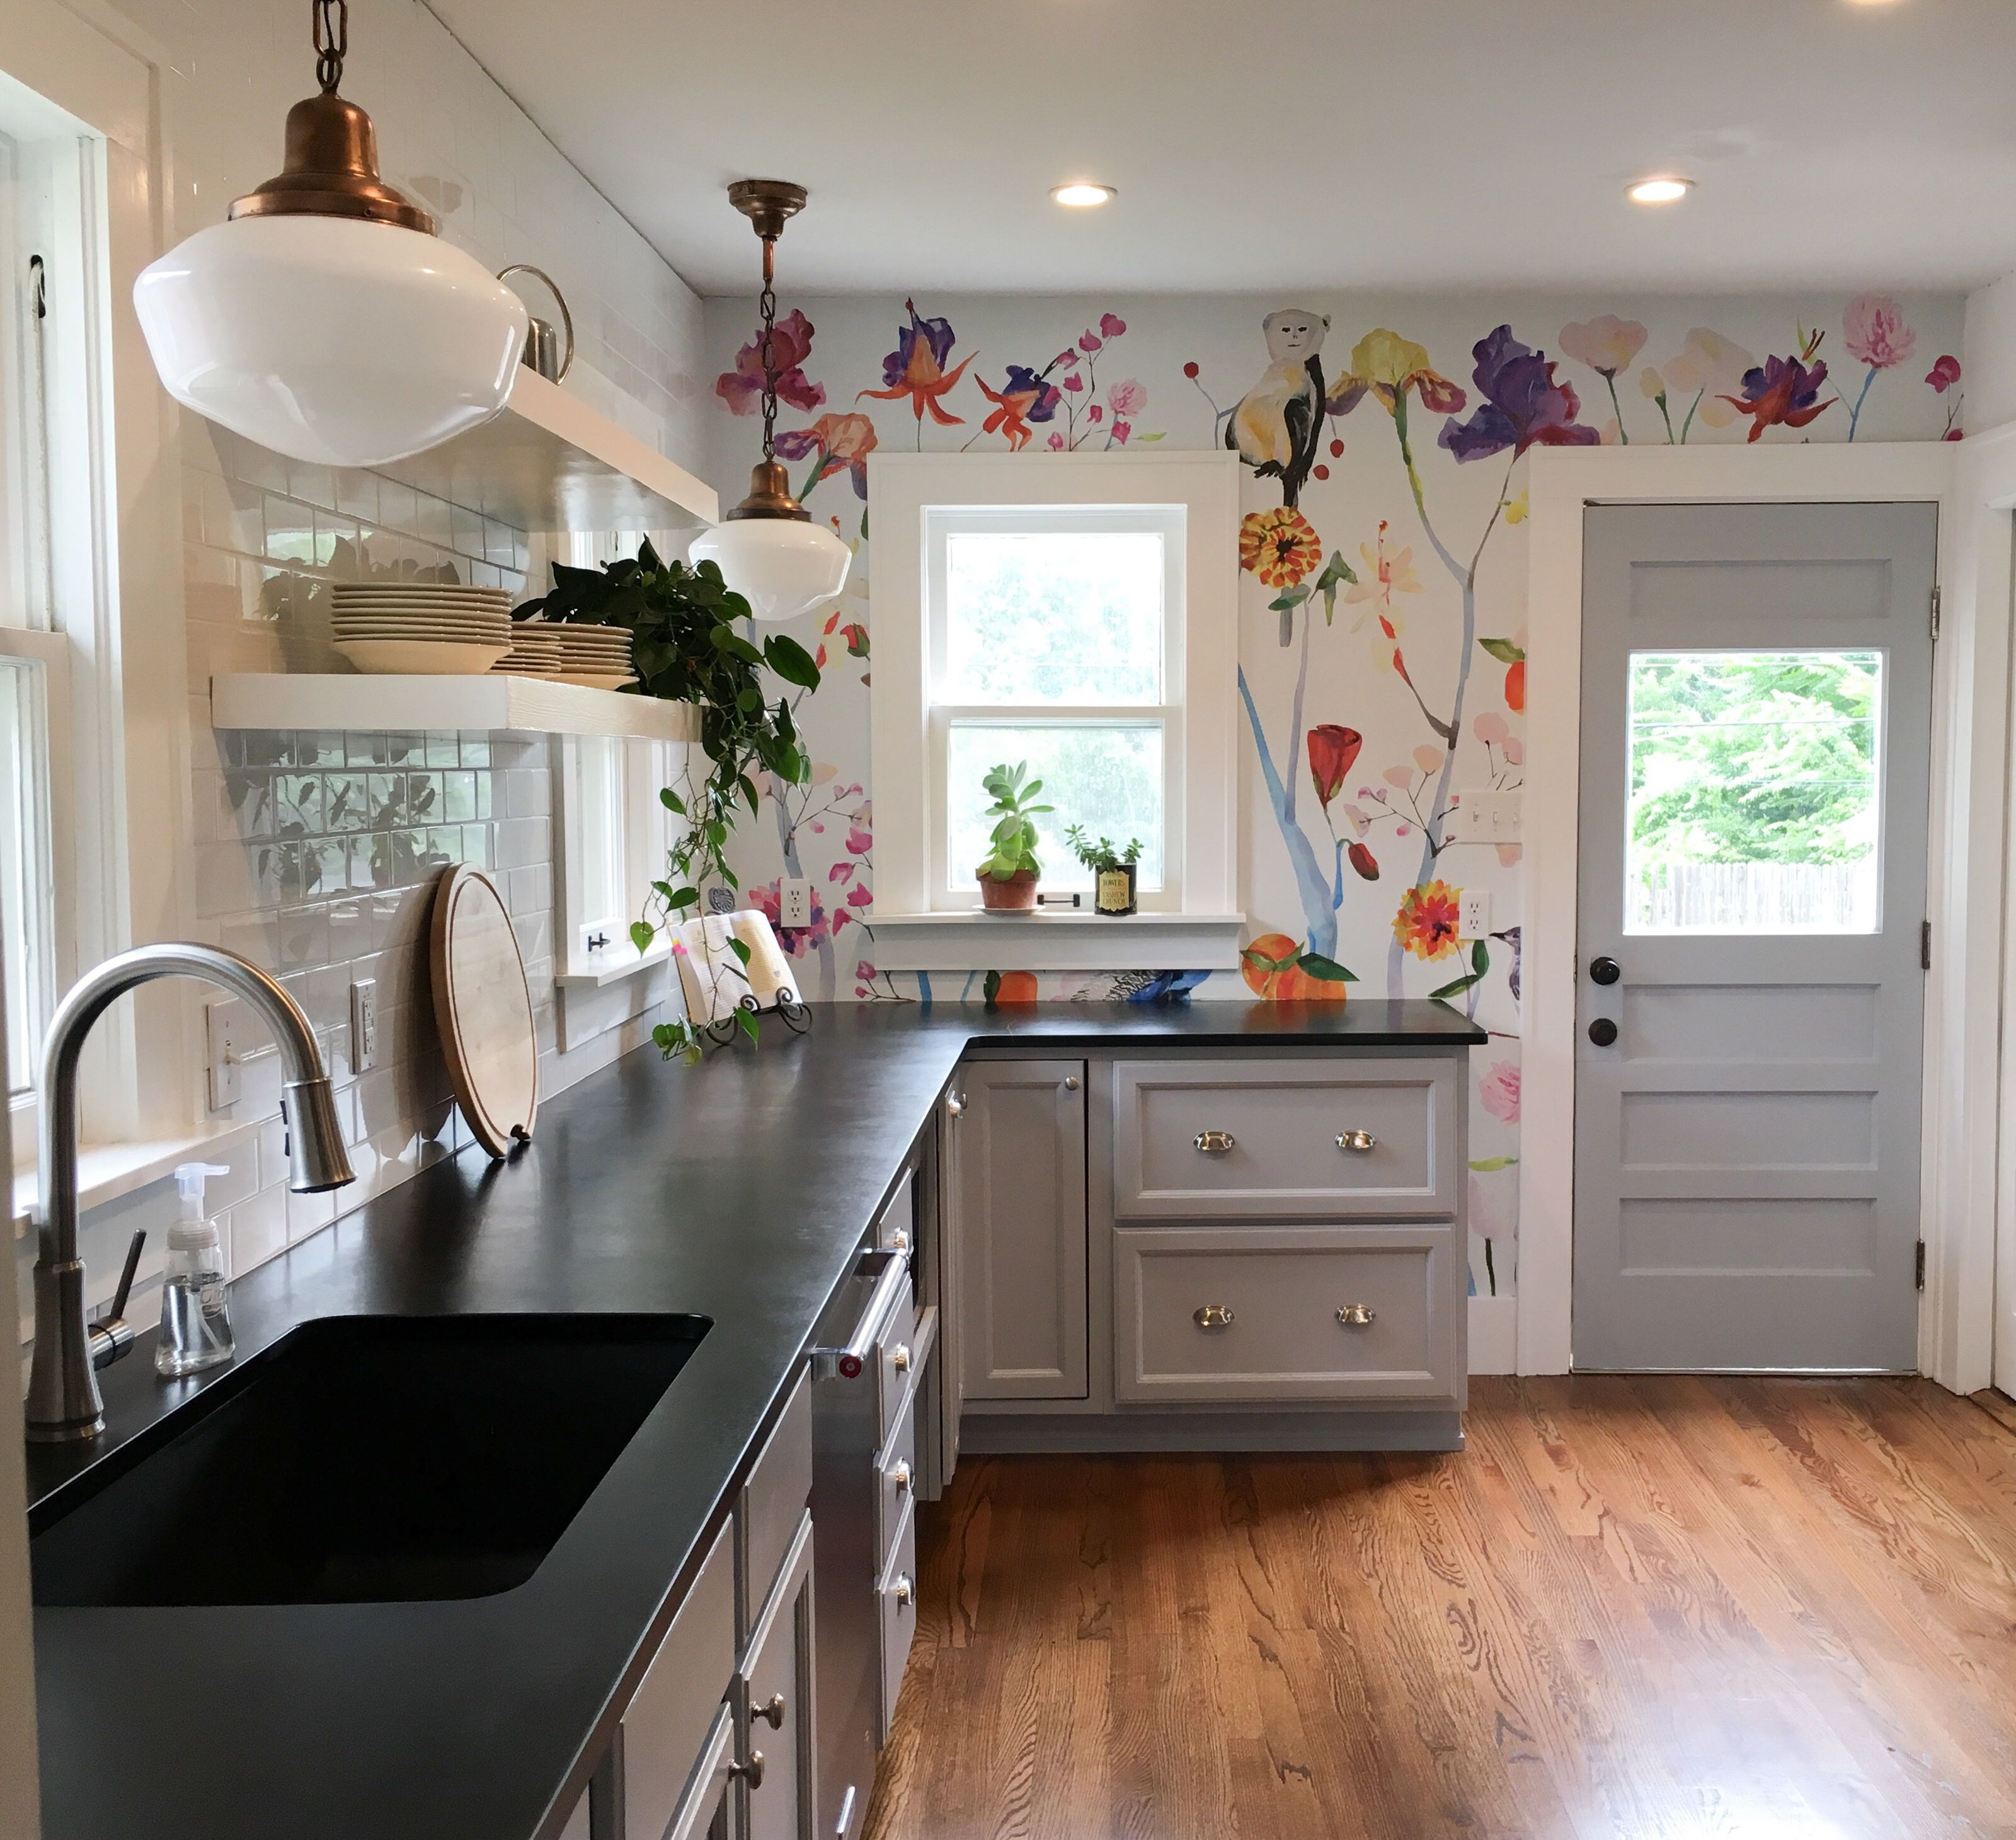 7 Smart Strategies For Kitchen Remodeling Kitchen Remodel Small Kitchen Remodeling Projects Kitchen Layout